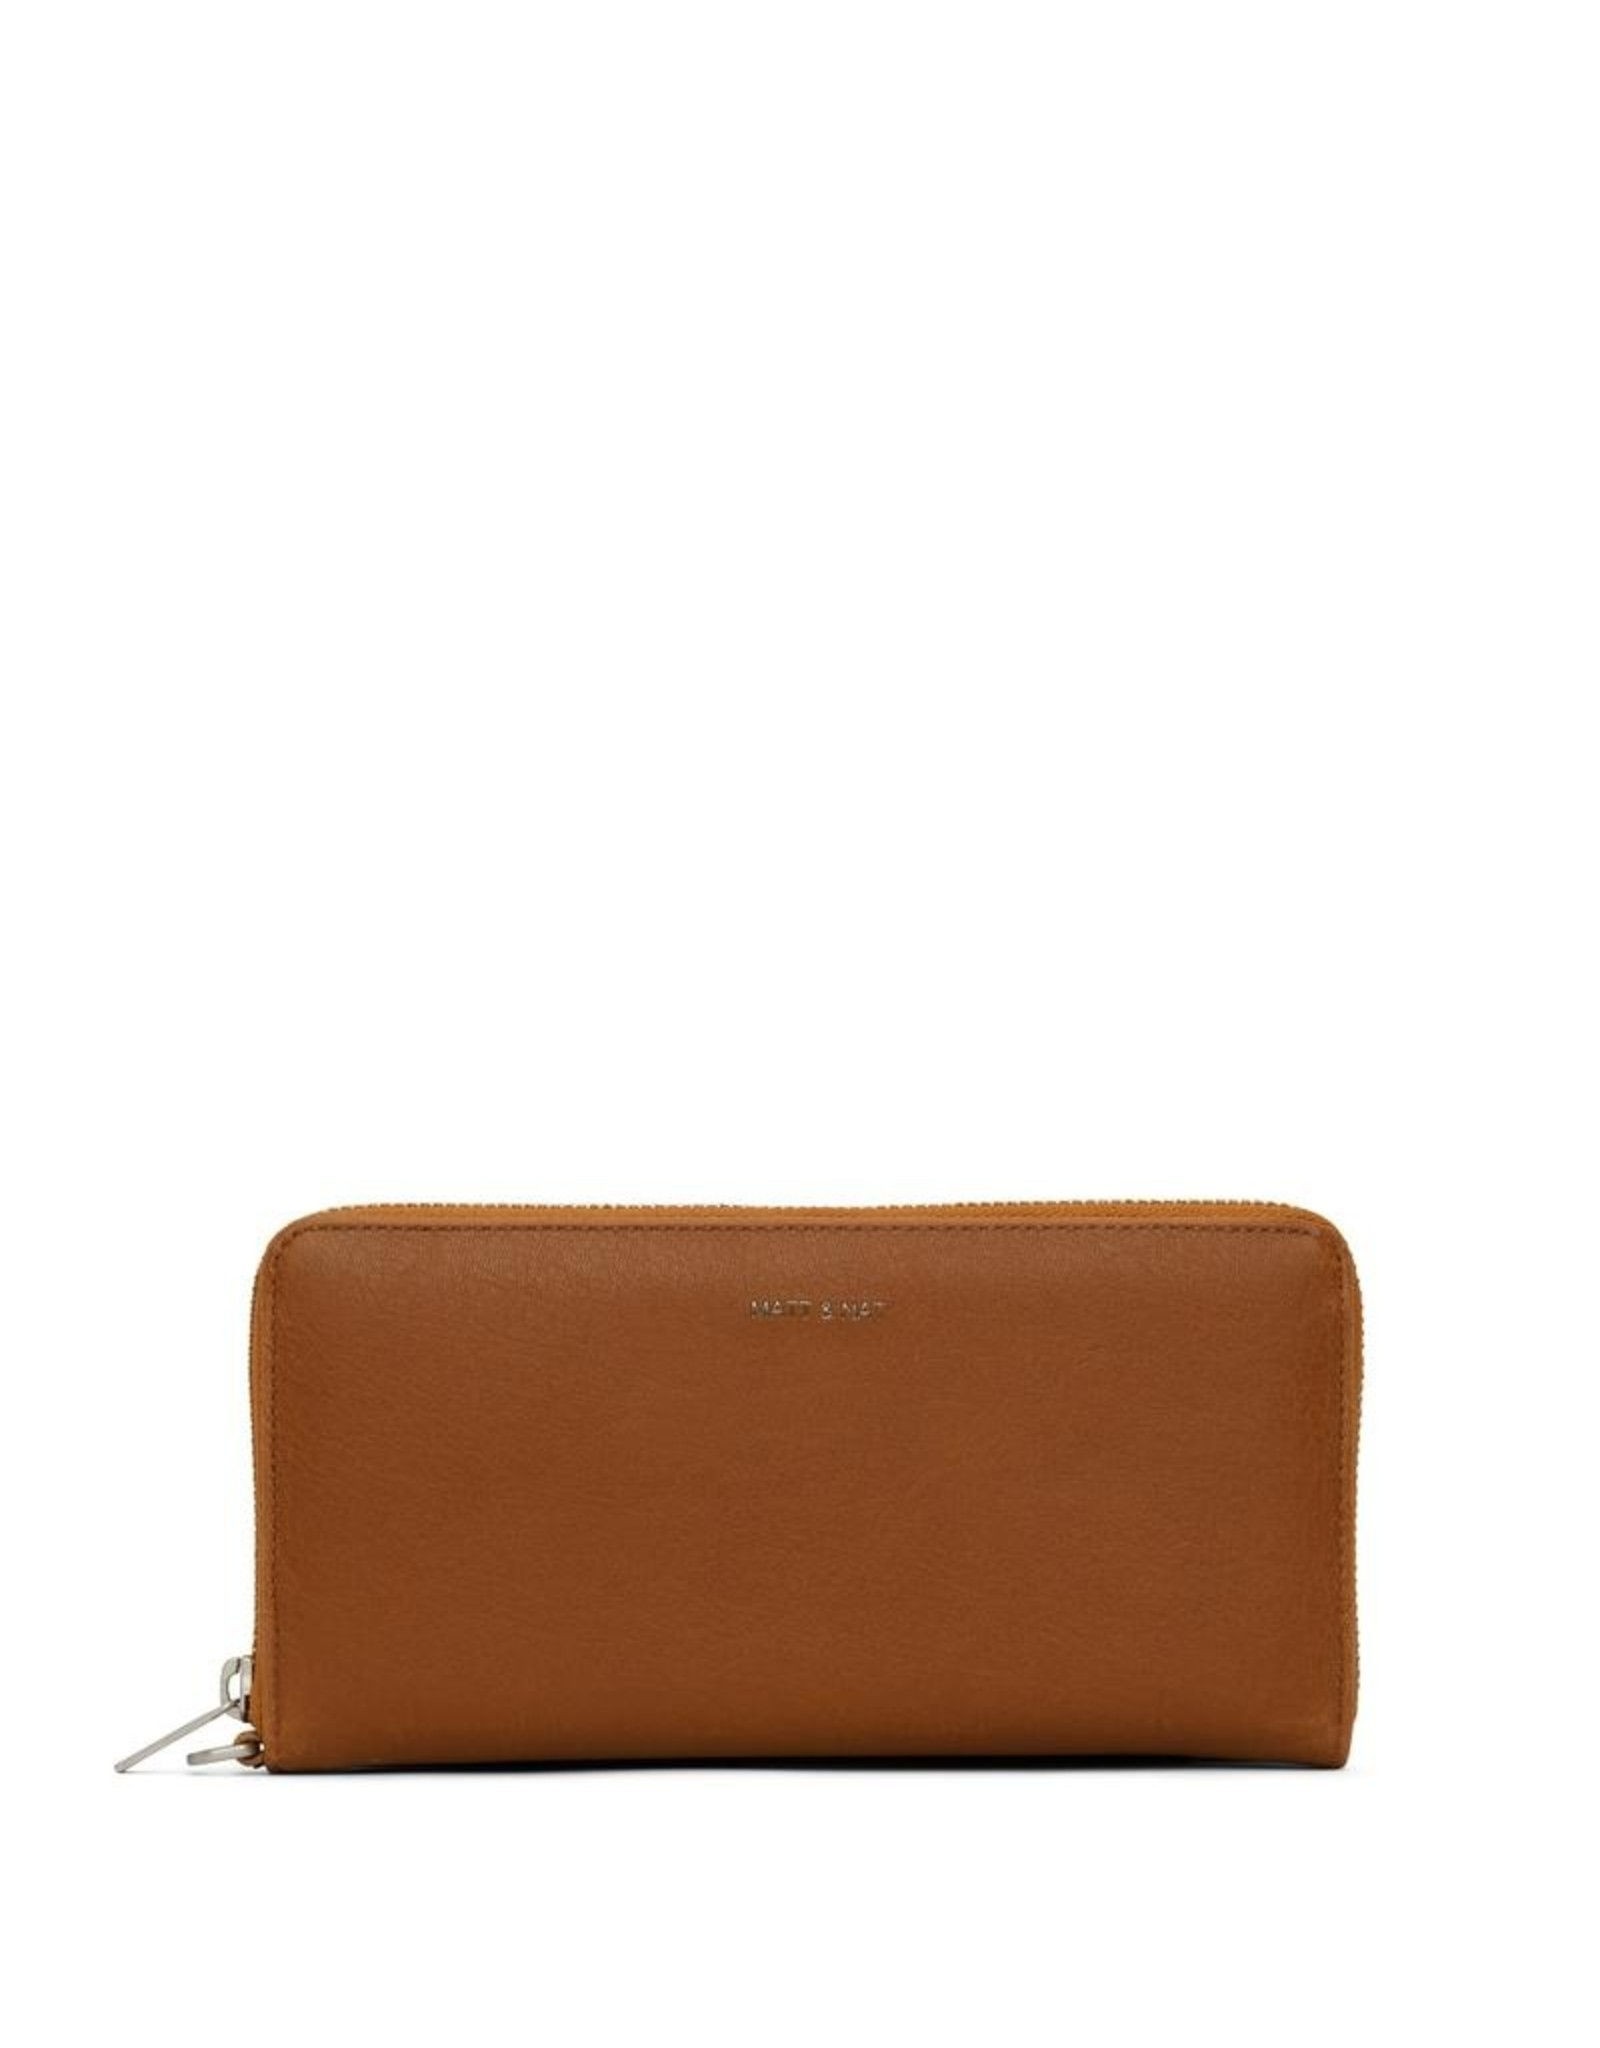 Matt & Nat - Elm Wallet With Wrist Strap/Chili